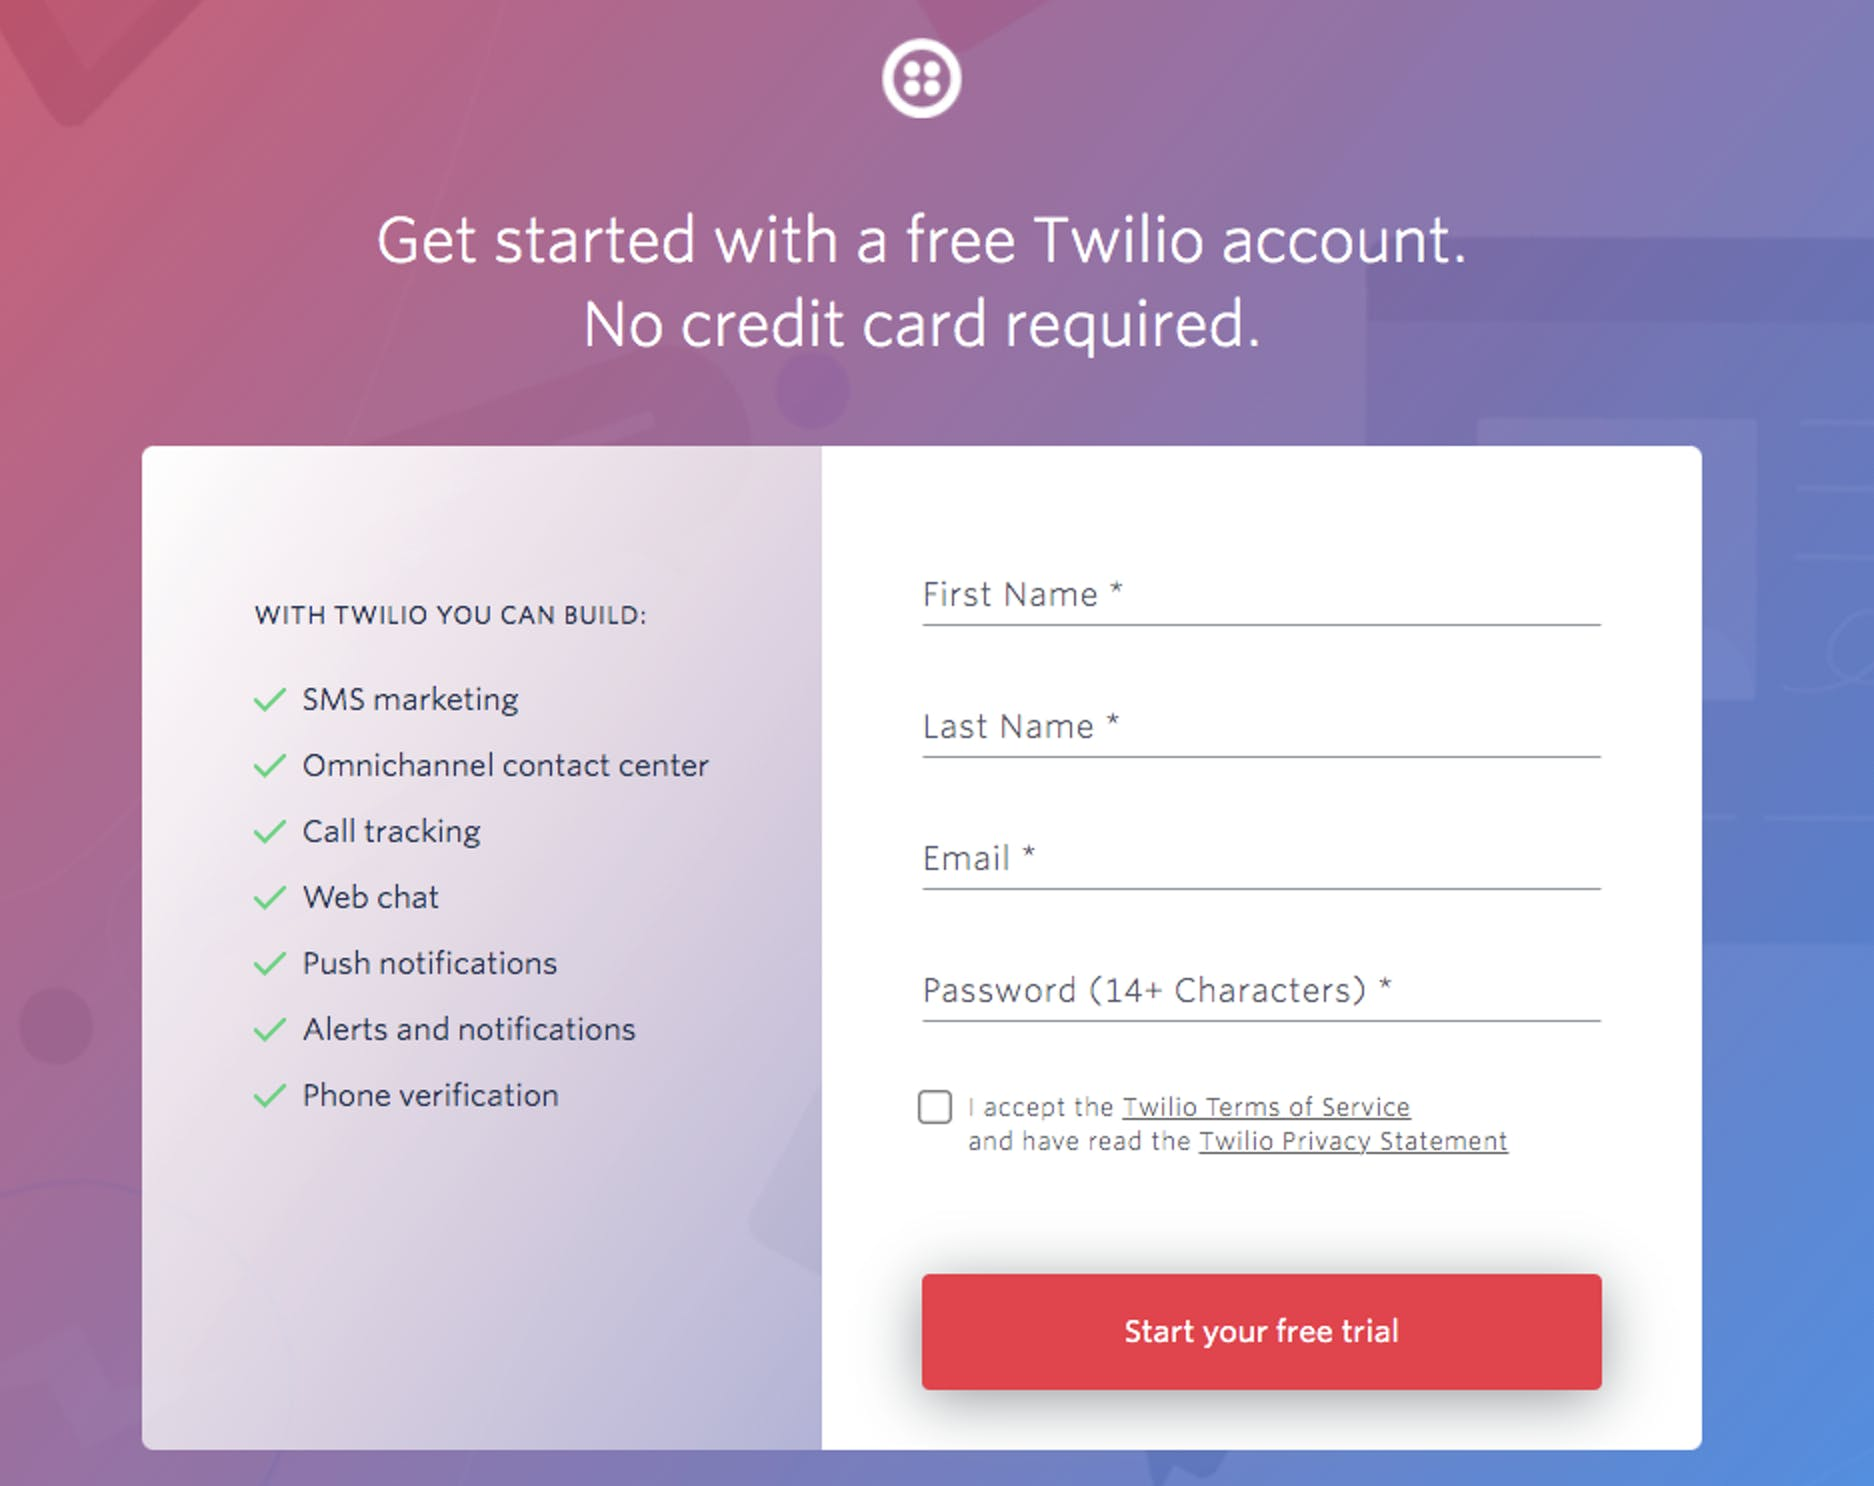 Twilio's sign-up page